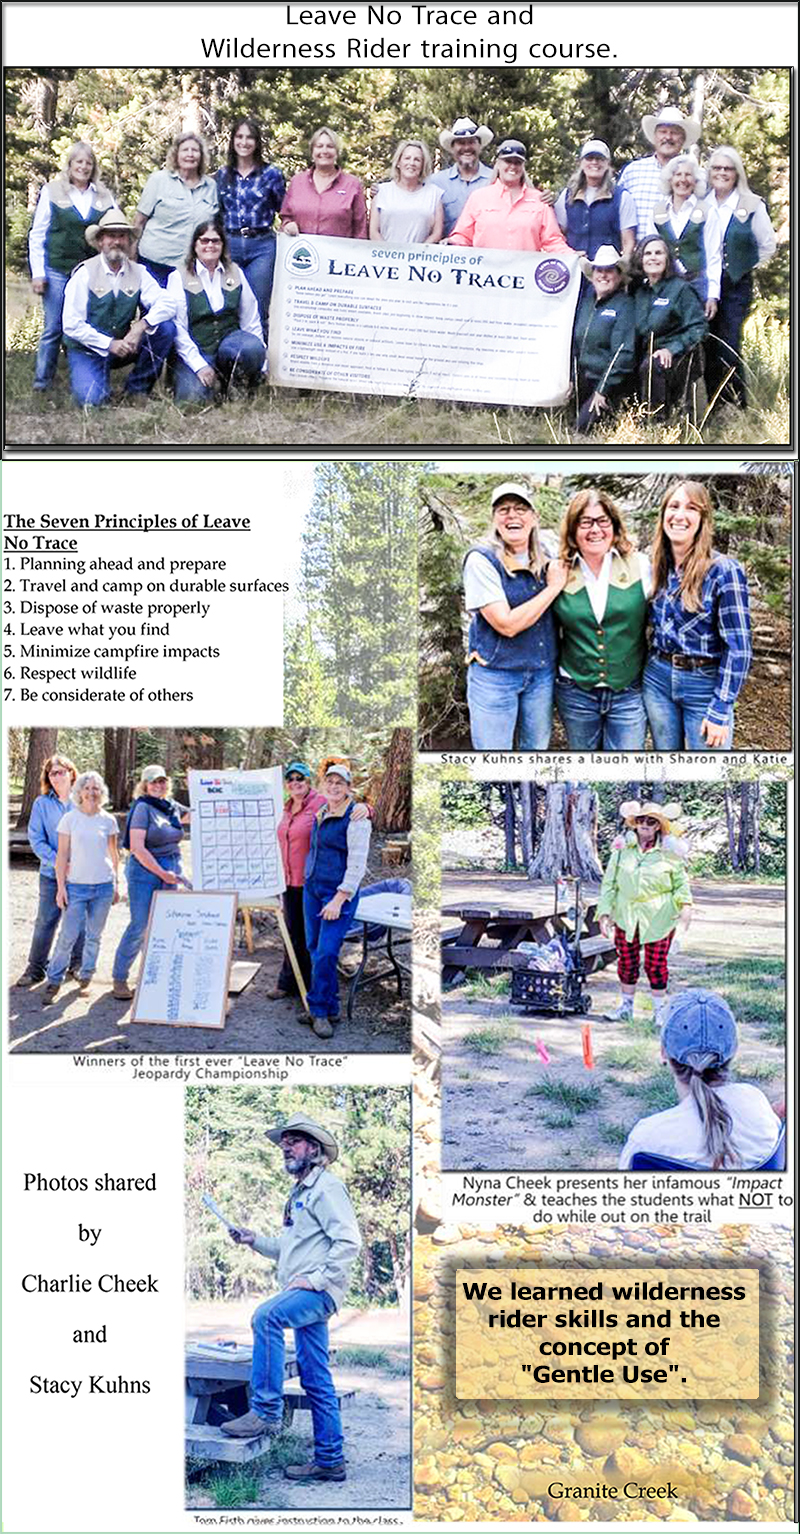 Leave No Trace Wilderness Rider Training 2019